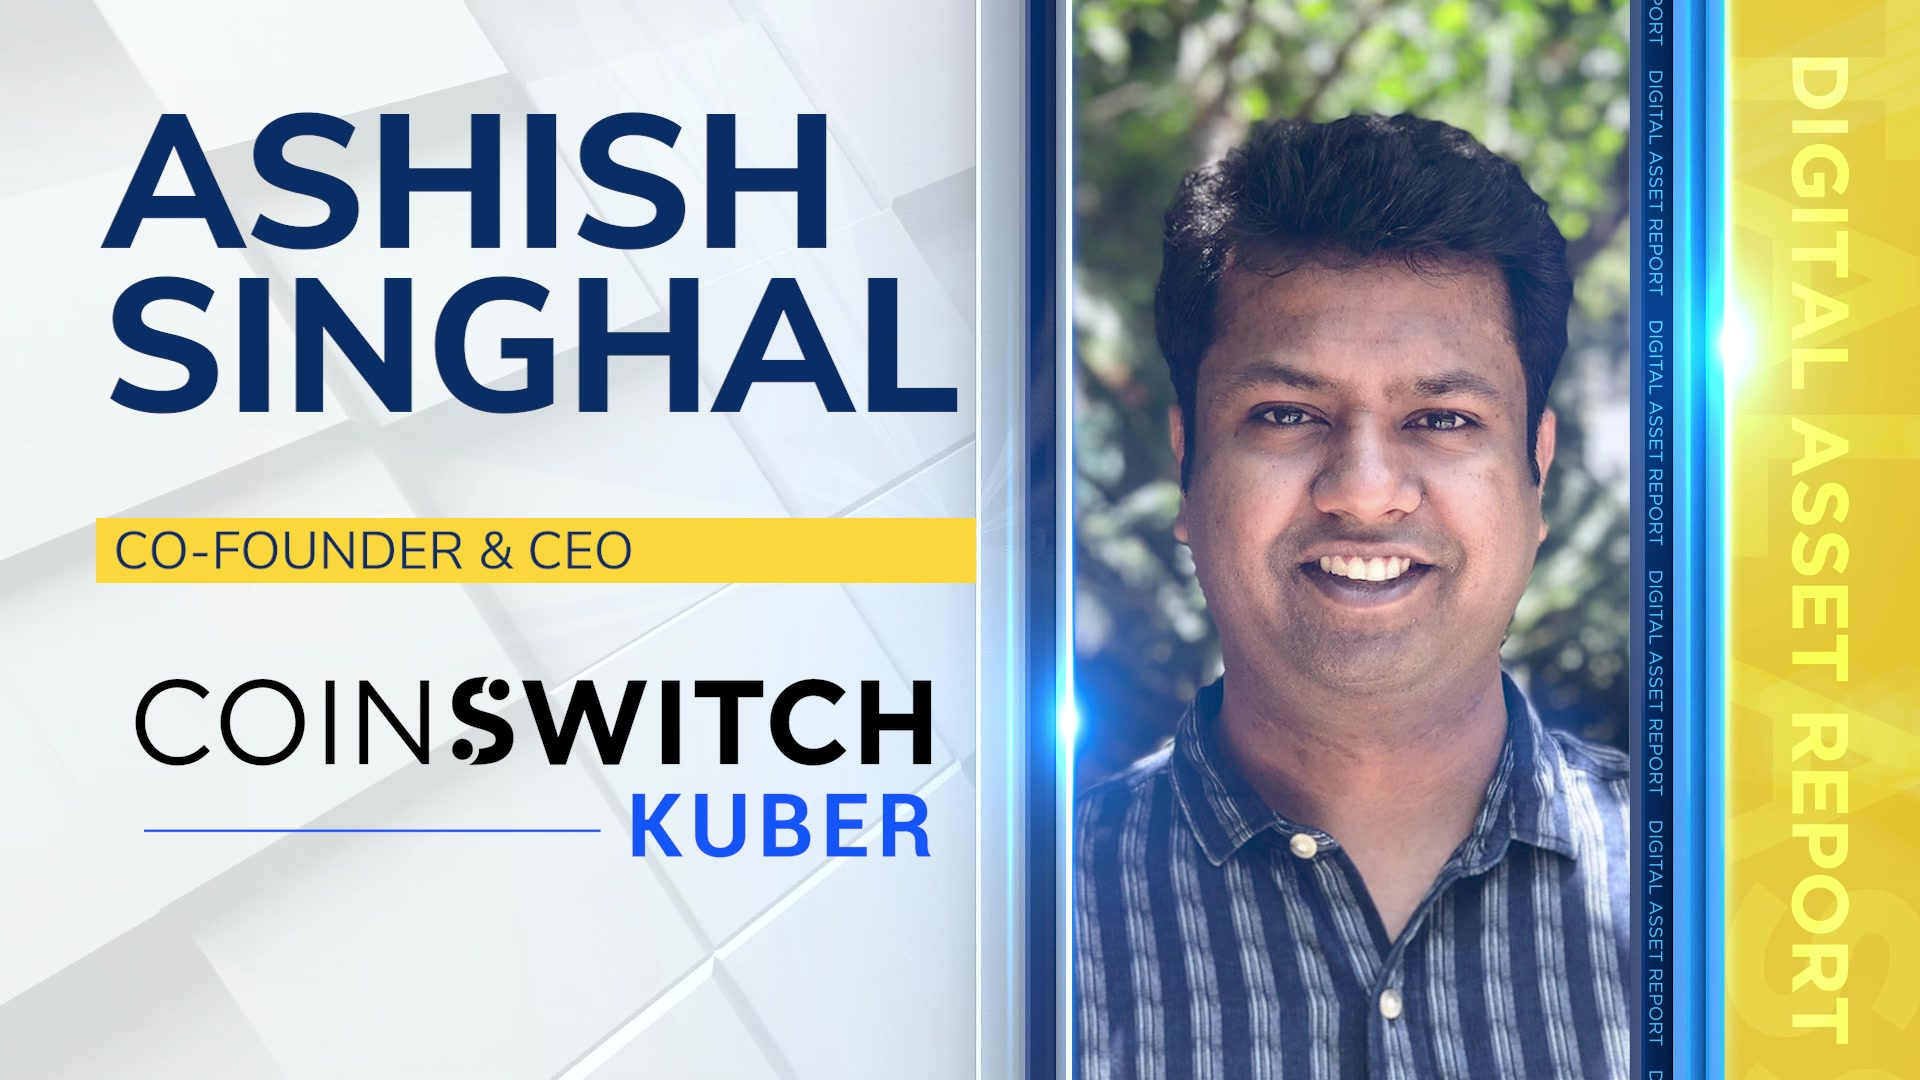 Ashish Singhal, Co-Founder & CEO at CoinSwitch Kuber